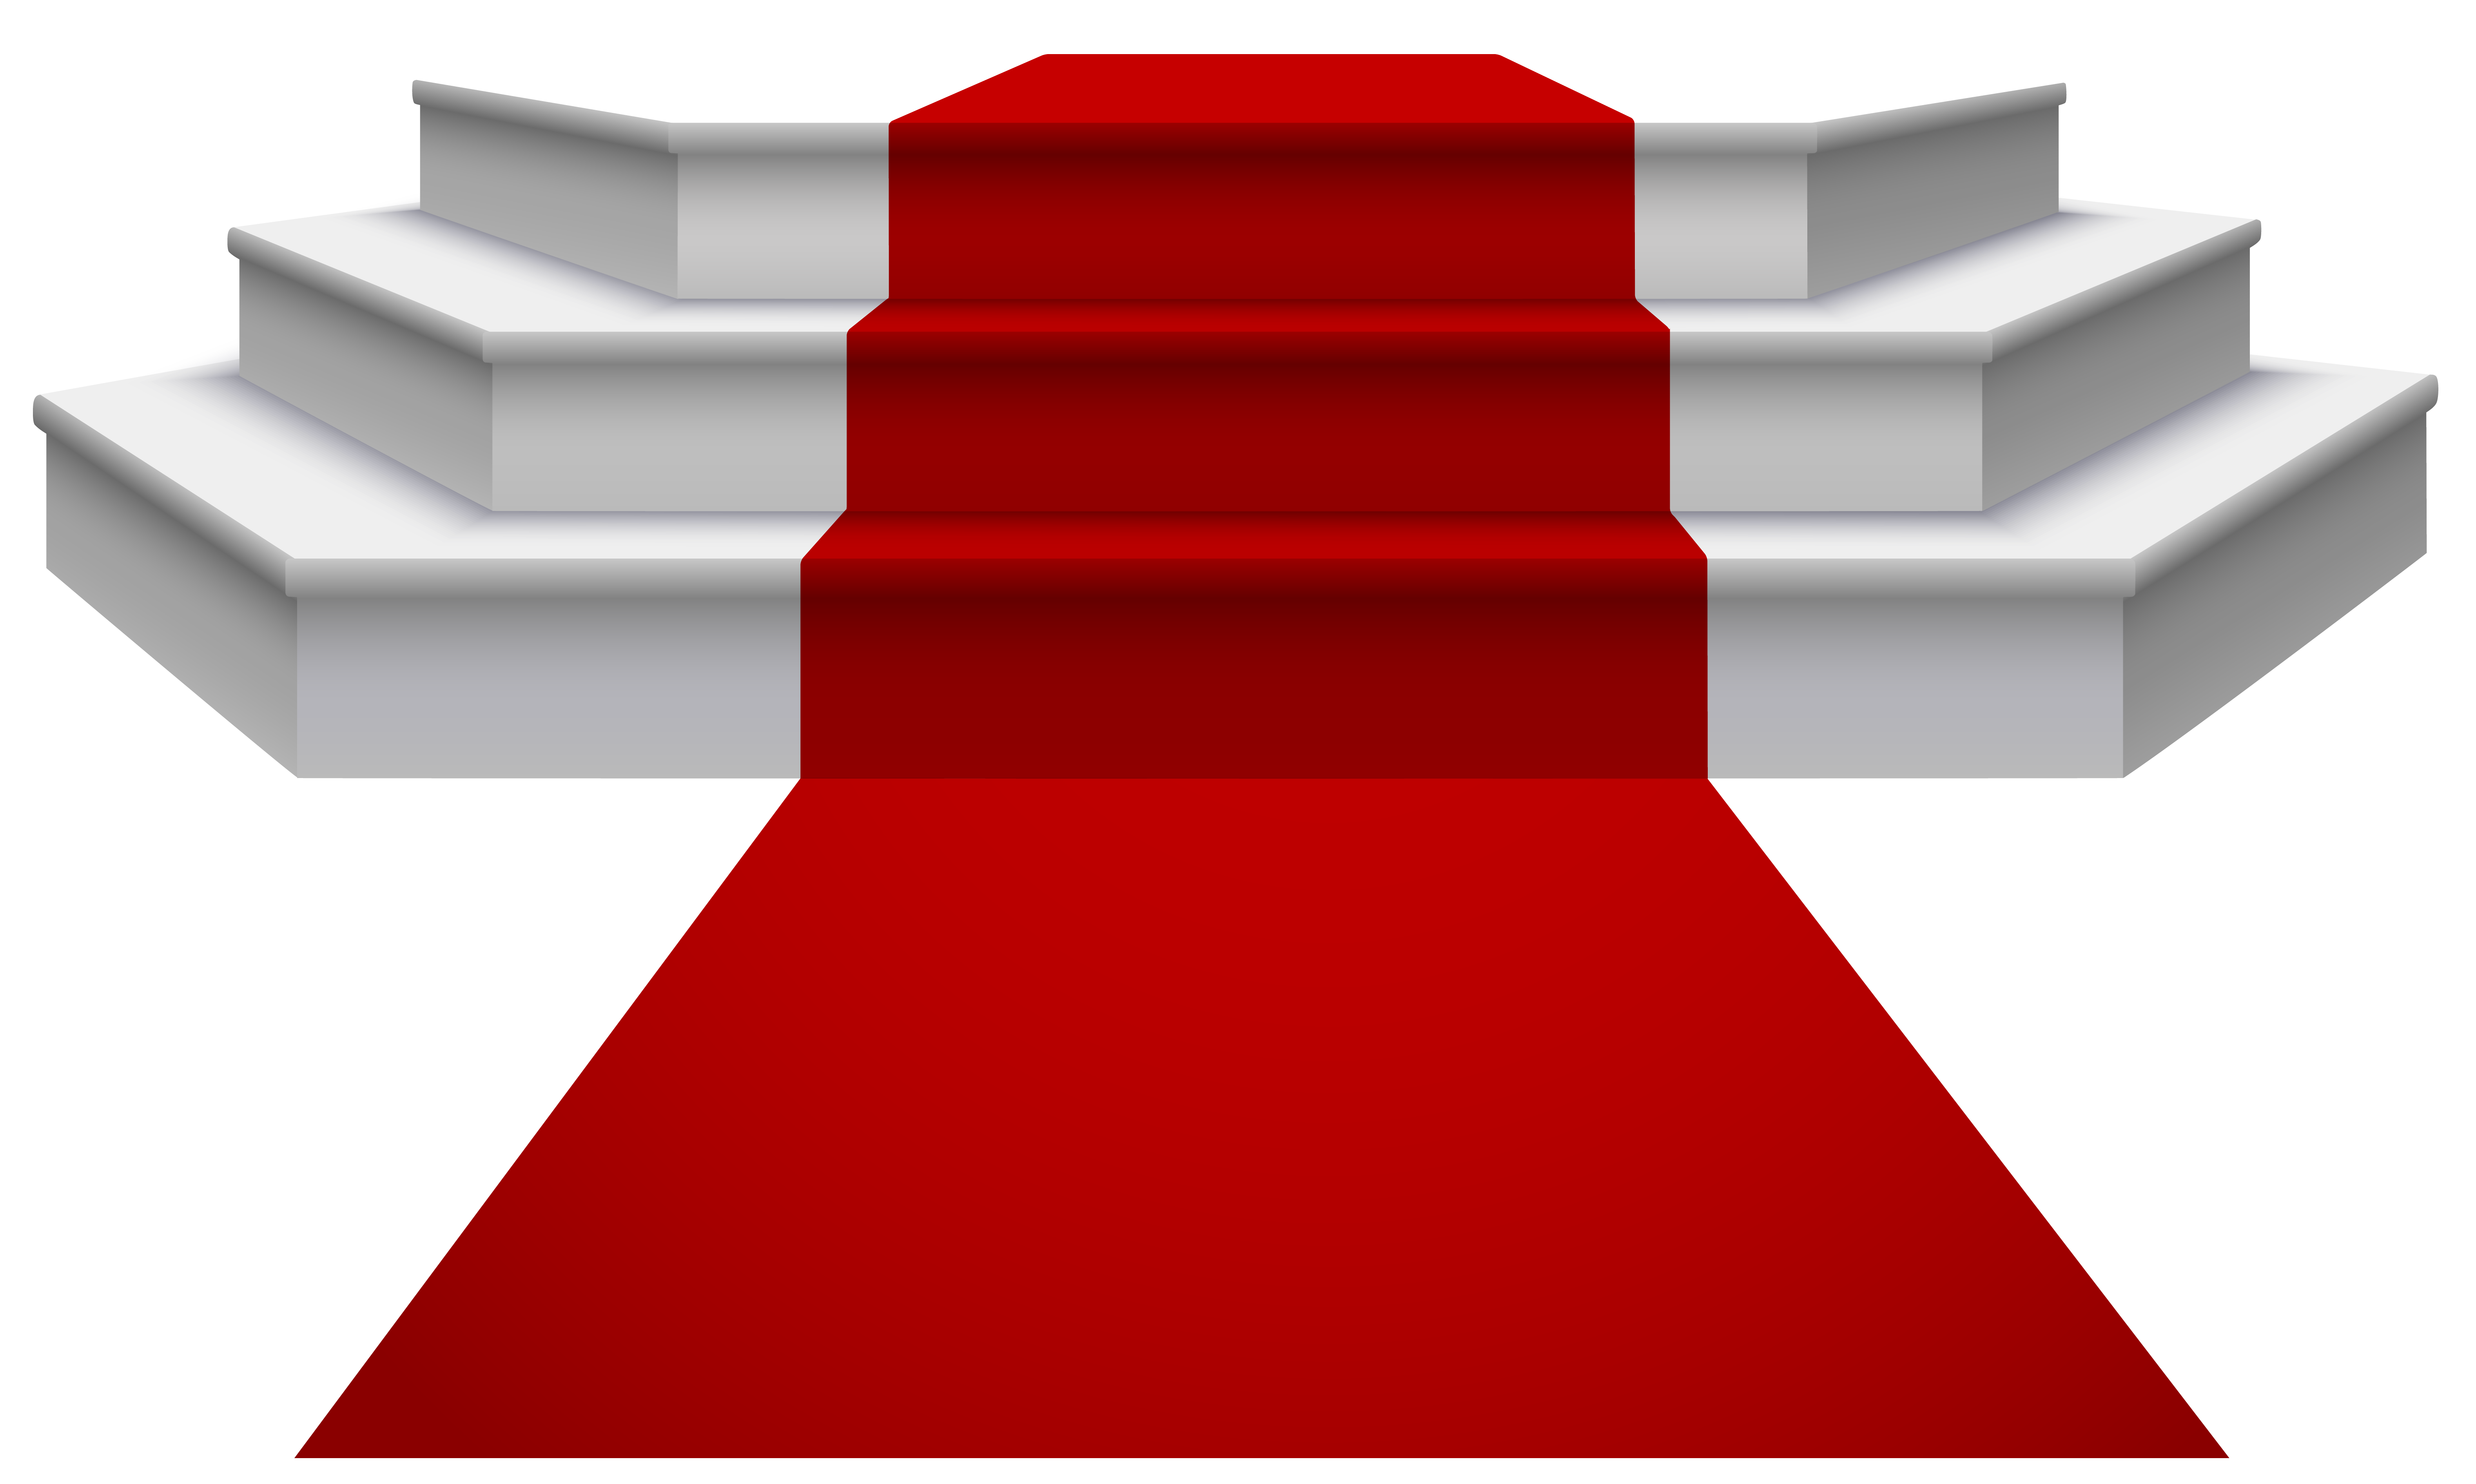 Movie star red carpet clipart picture transparent download White Podium with Red Carpet PNG Clipart Image | Gallery ... picture transparent download